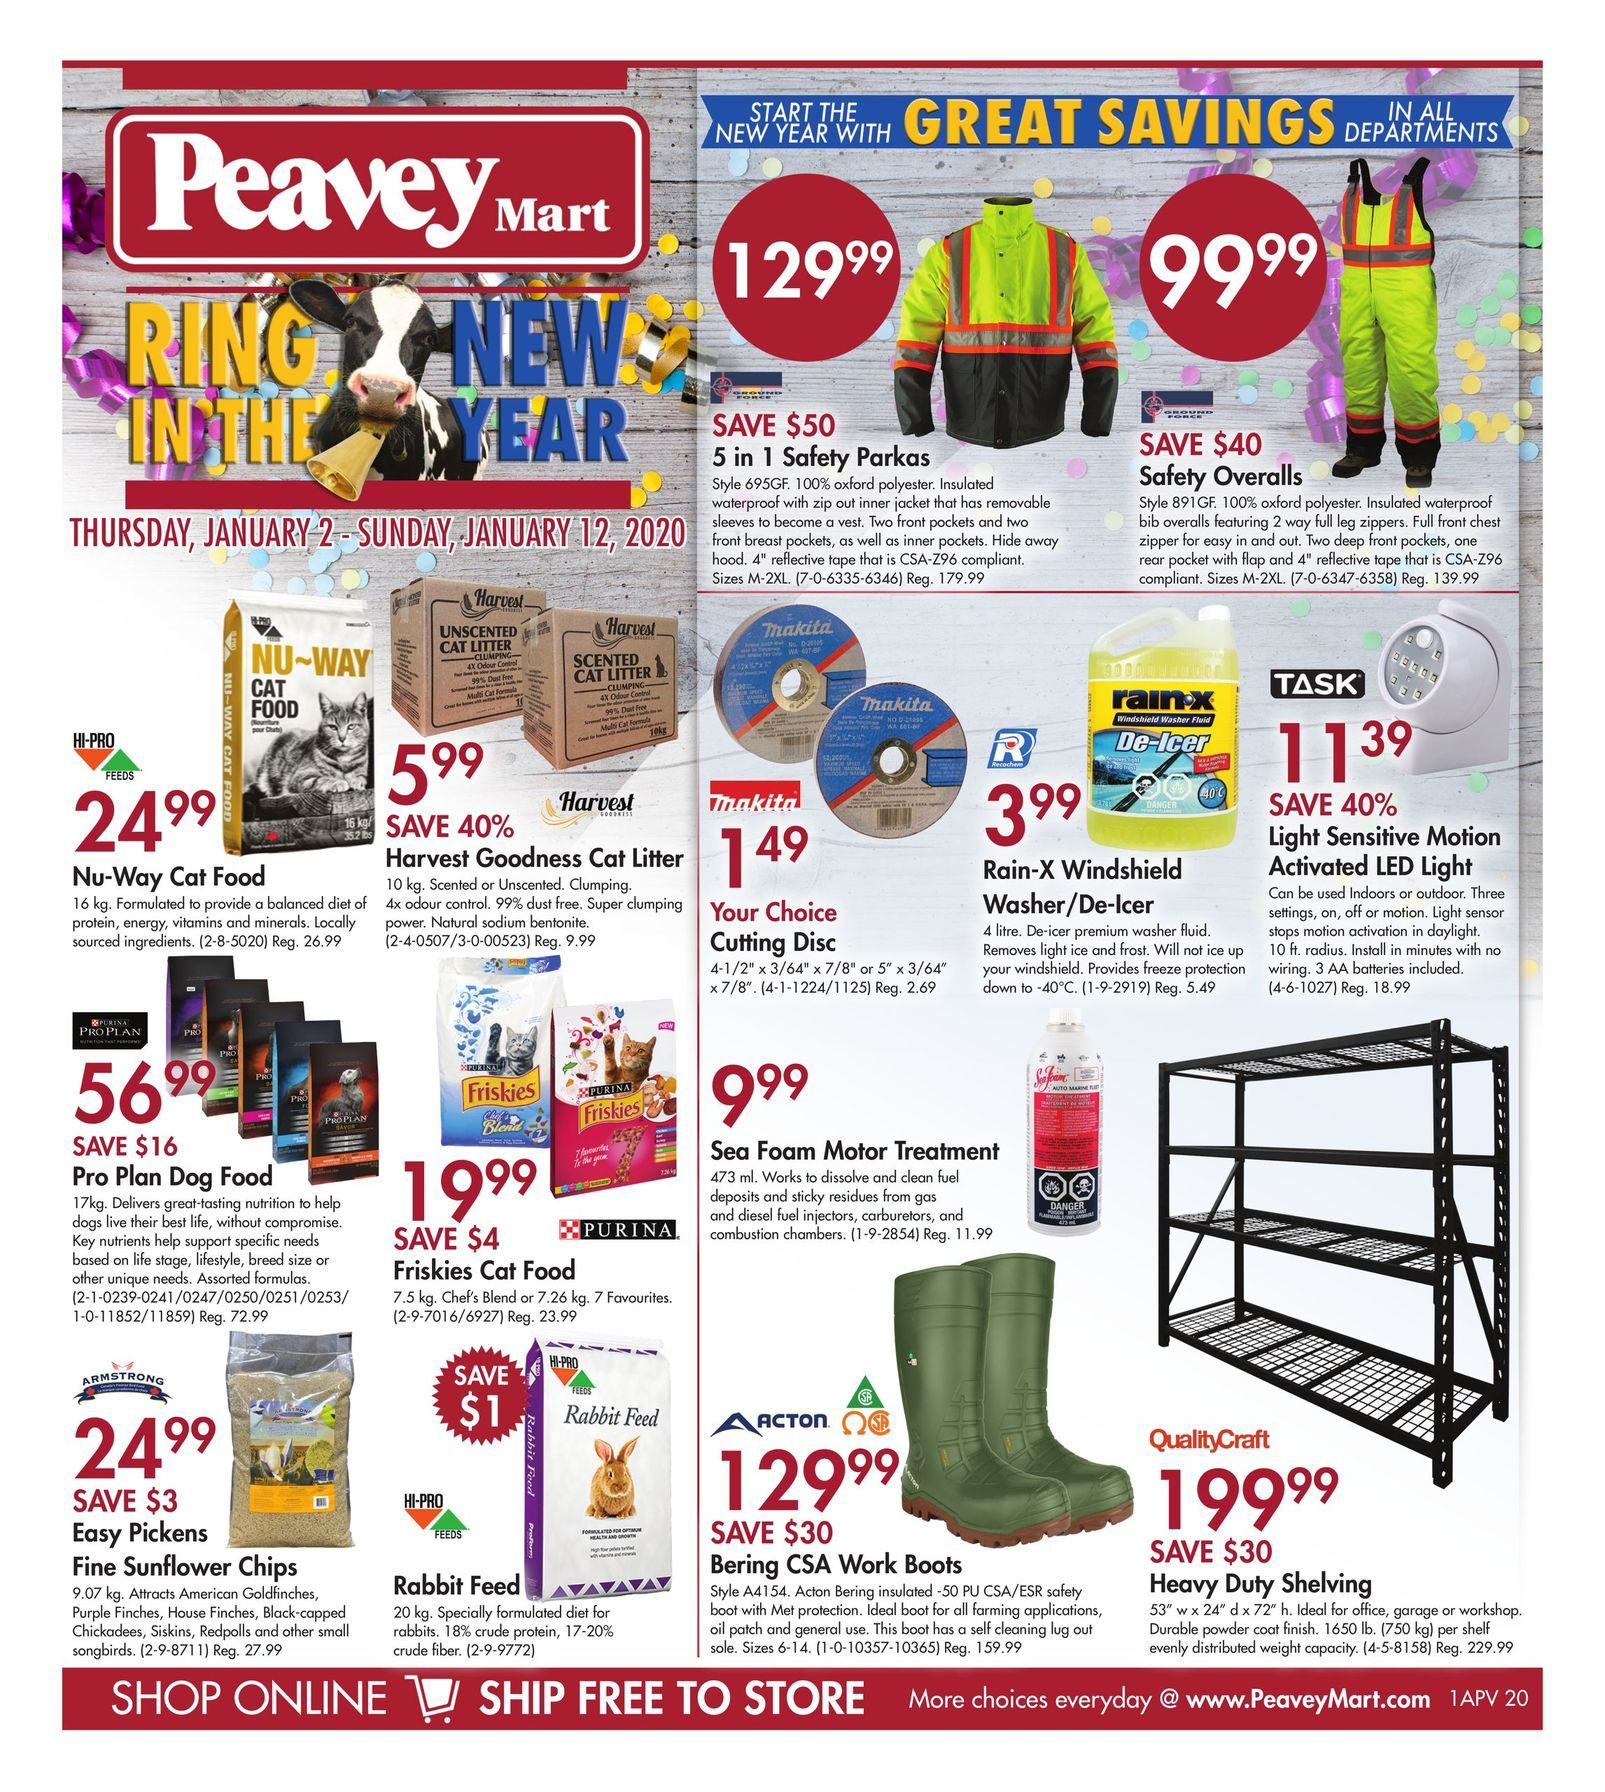 Peaveymart Weekly Flyer Ring In The New Year Jan 2 12 Redflagdeals Com